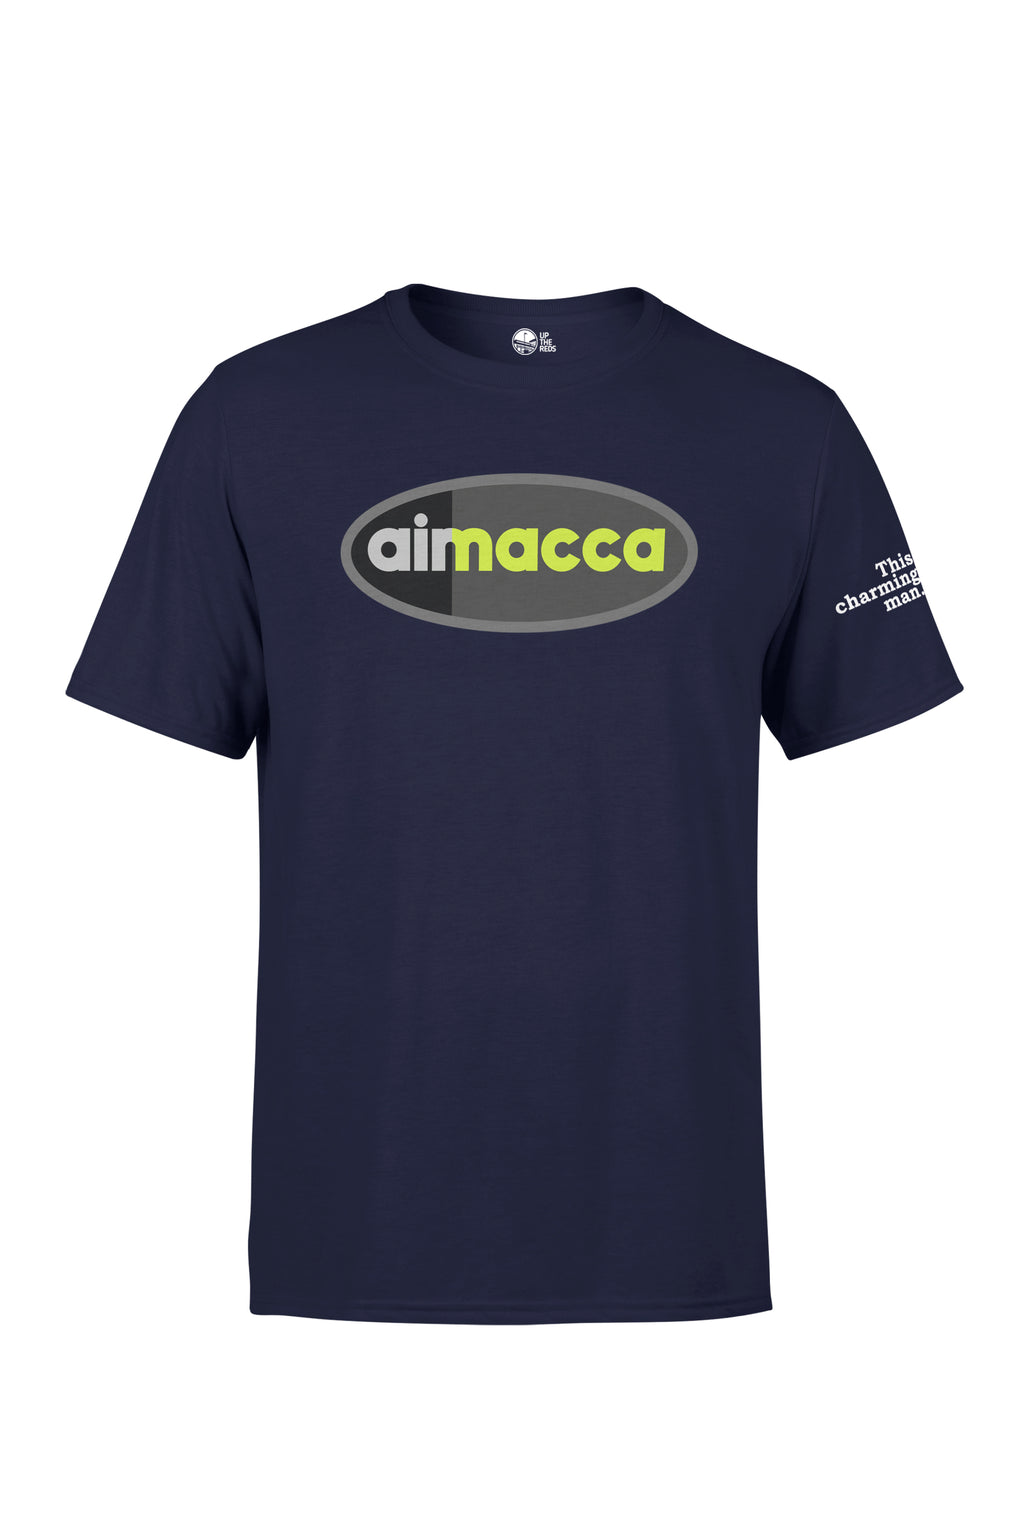 UTR x Jack McLoughlin - Air Macca - Green (Navy)